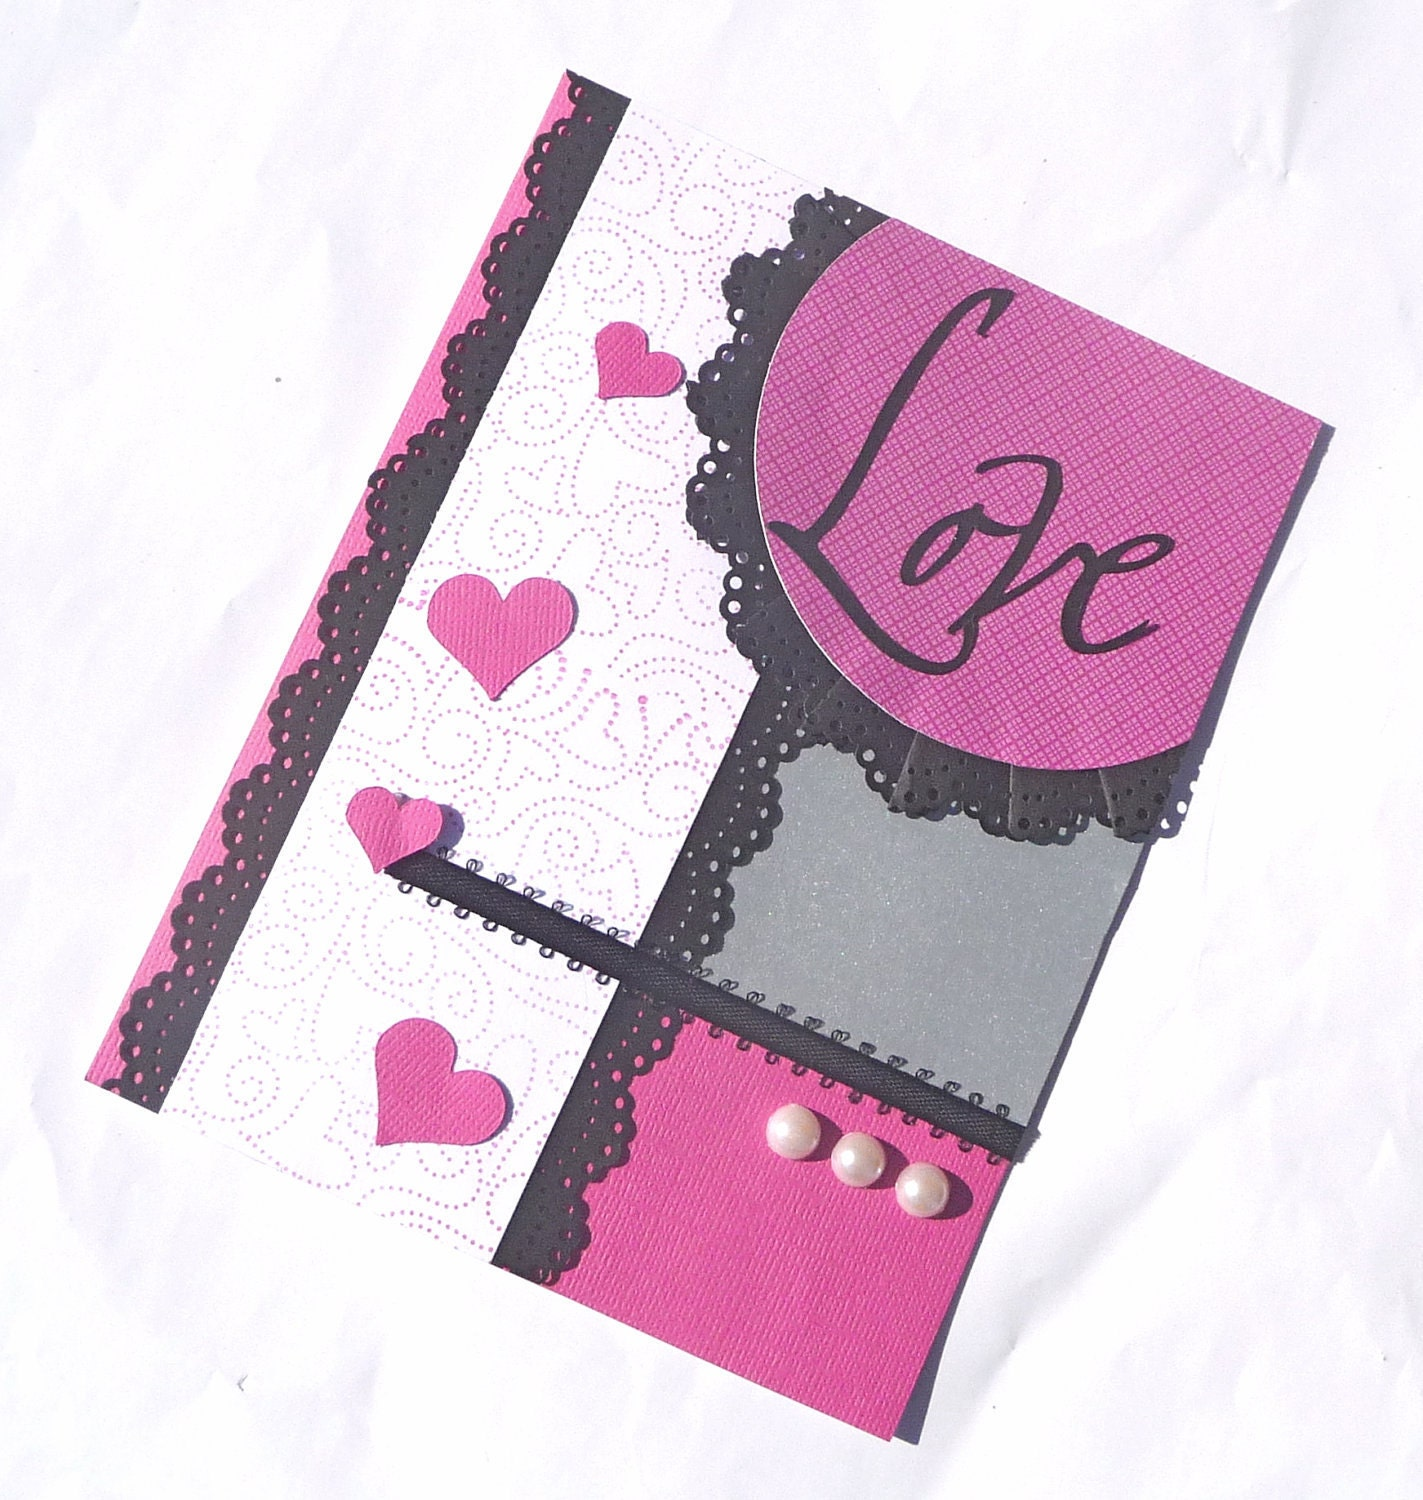 Happy Valentines Day LOVE Handmade Greeting Card – Handmade Greeting Cards for Valentine Day